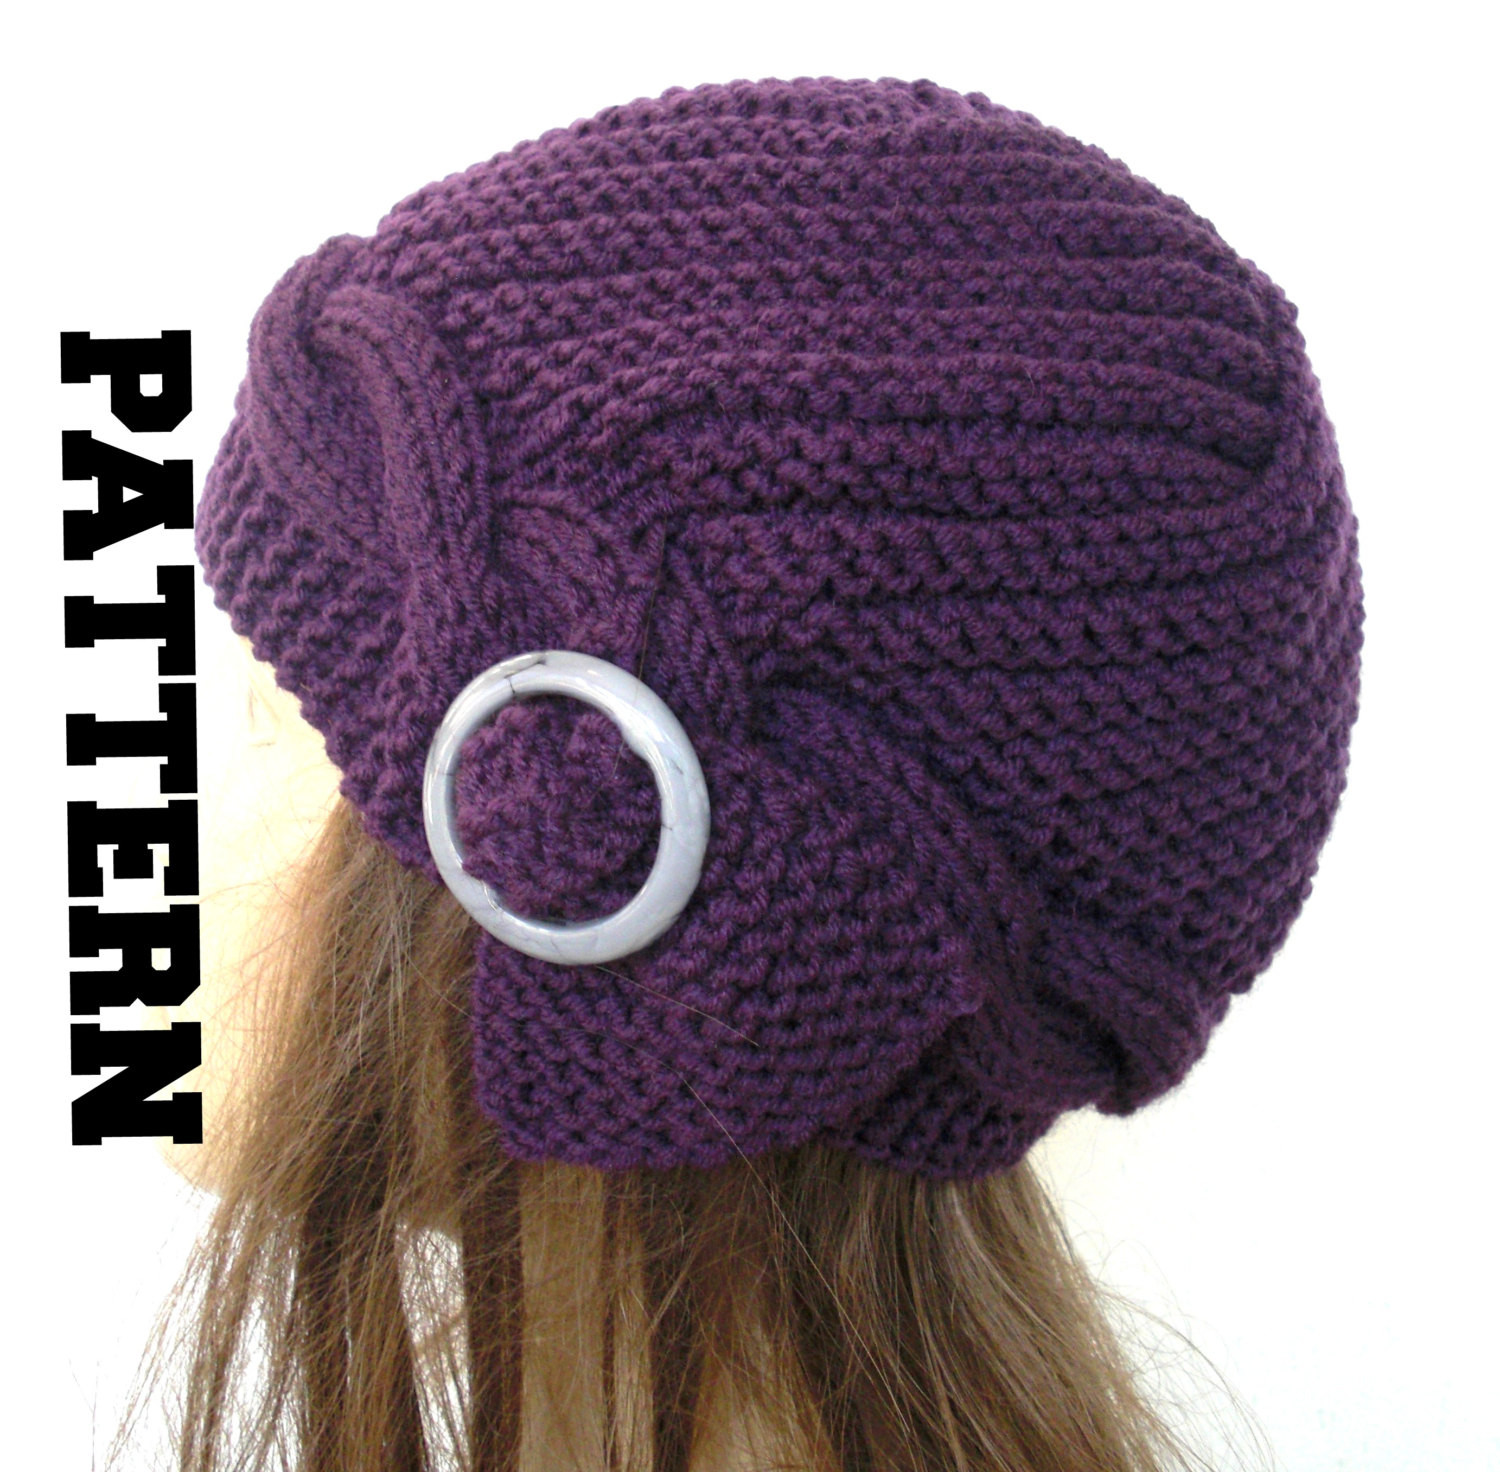 Knit Hat Patterns Inspirational Cable Knit Hat Pattern Instant Download Knit Hat Pattern Of Gorgeous 49 Pictures Knit Hat Patterns